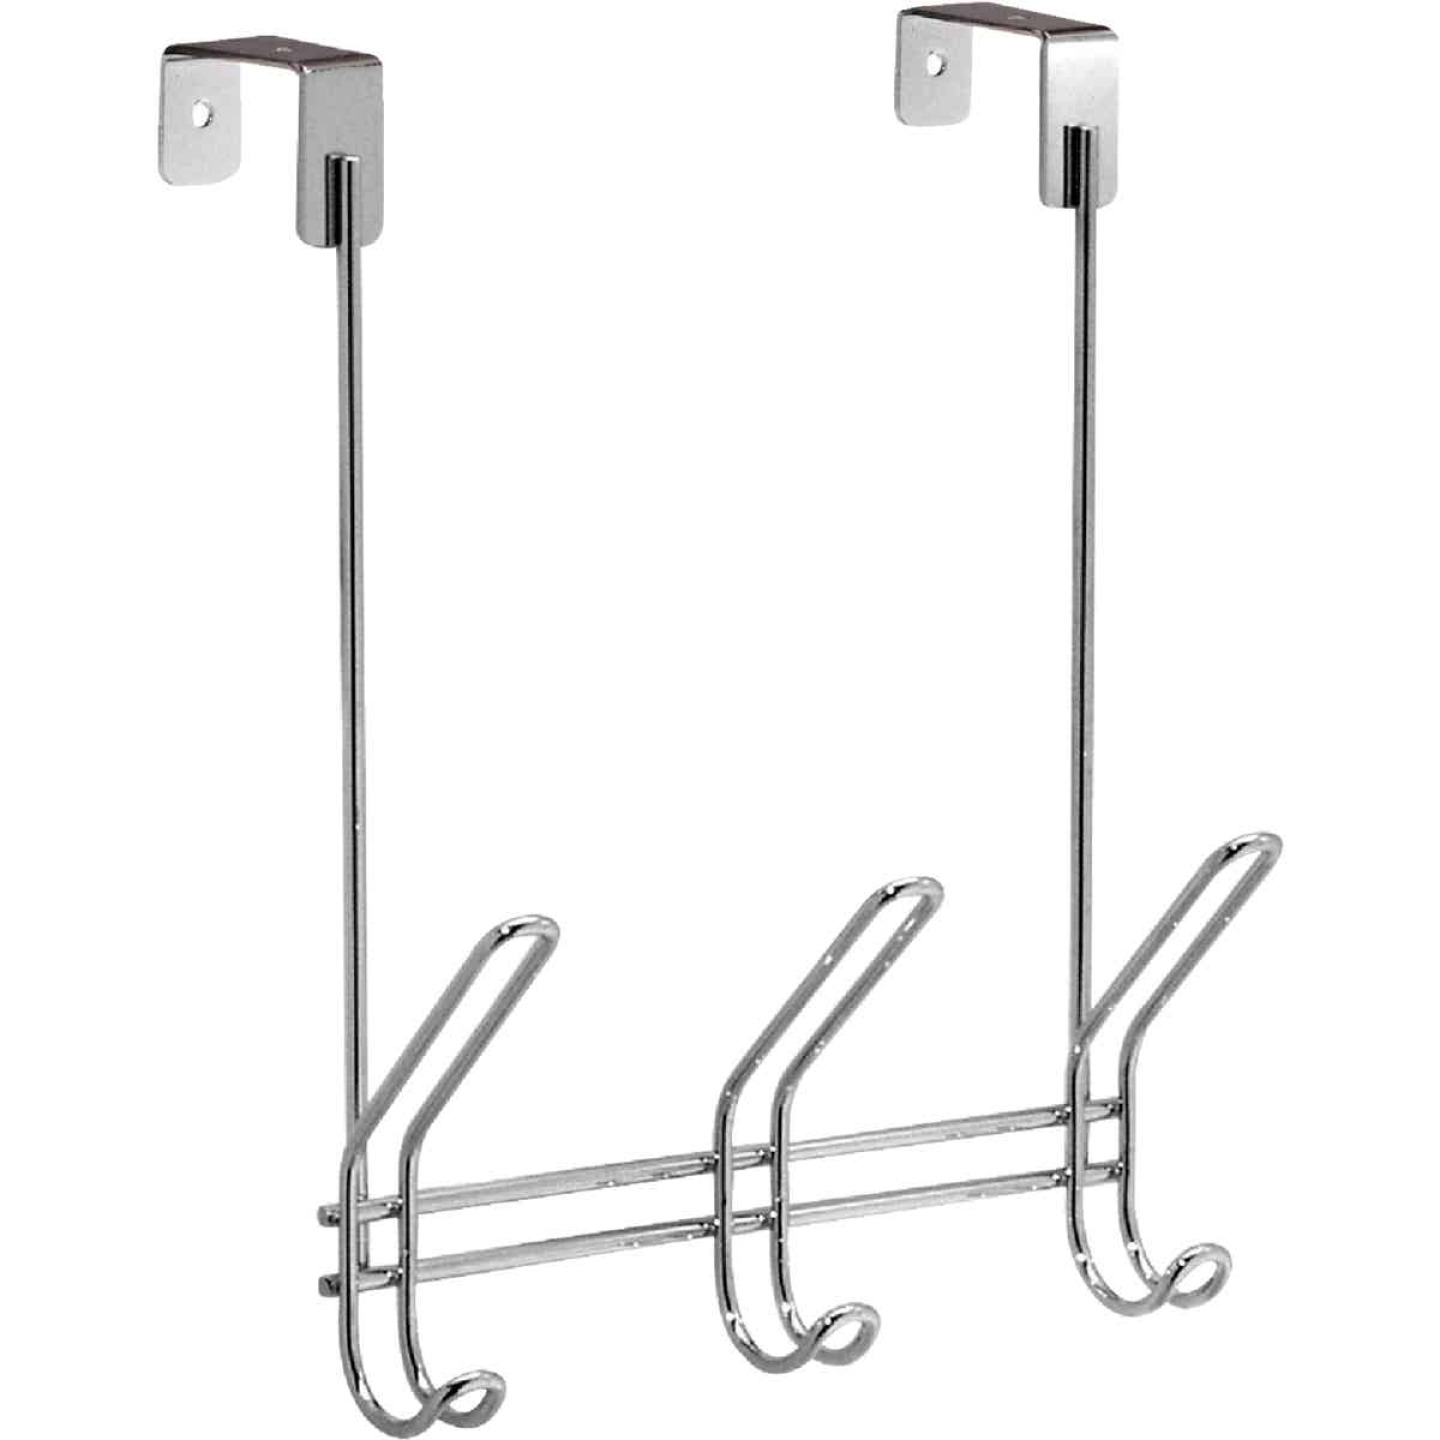 InterDesign Classico Over-The-Door Chrome 3-Hook Rail Image 1